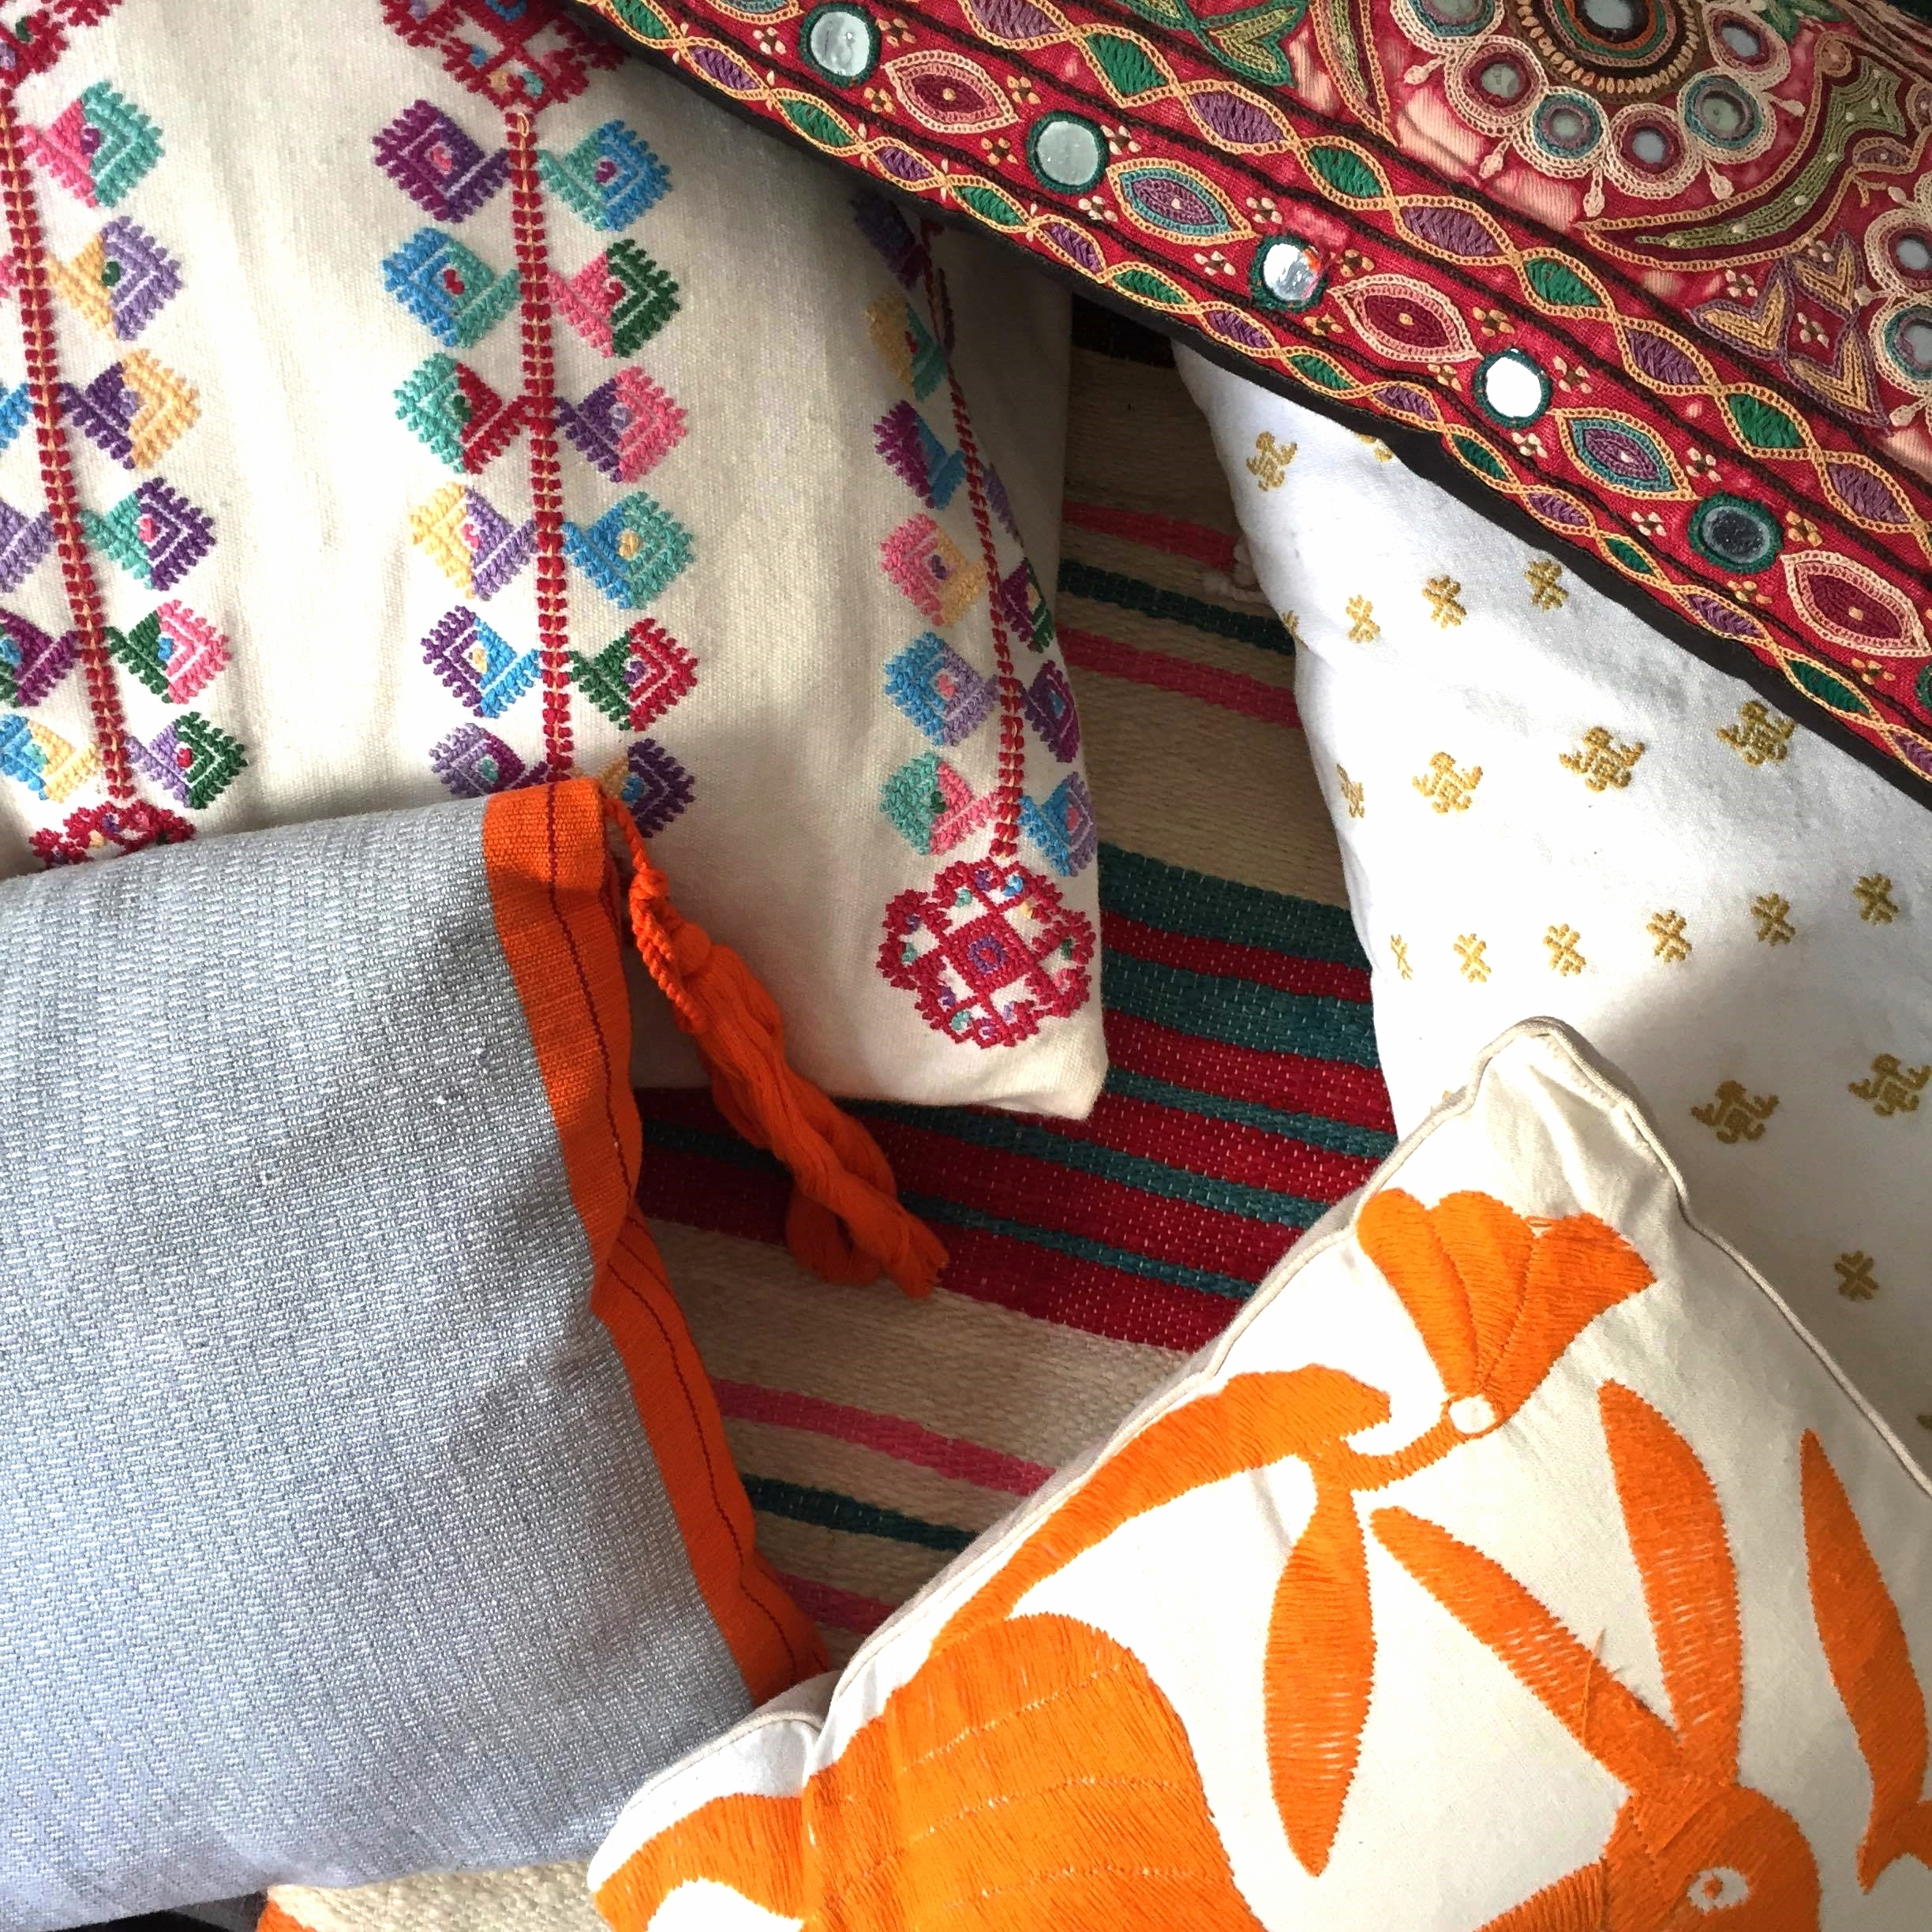 I keep my colorful pillows together in one room. This is my playful, sunny corner that is a definite break from the more muted color palette elsewhere. The pillows shown here are mostly from Mexico, with my mother's vintage Mexican blanket and bohemian pillow mixed in.